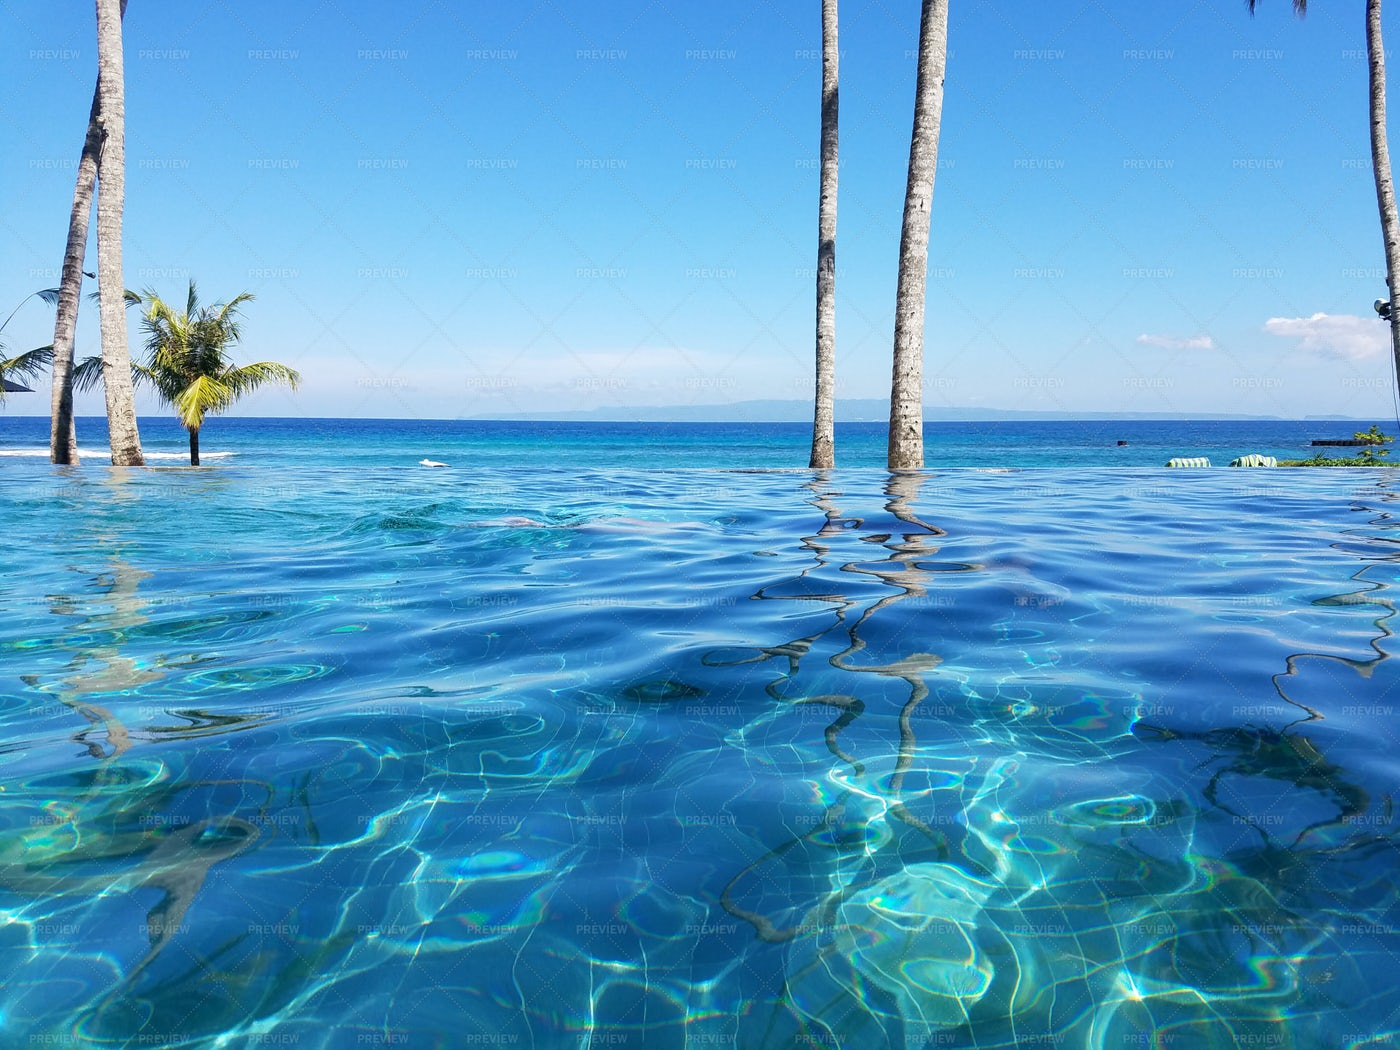 Water In The Infinity Pool: Stock Photos